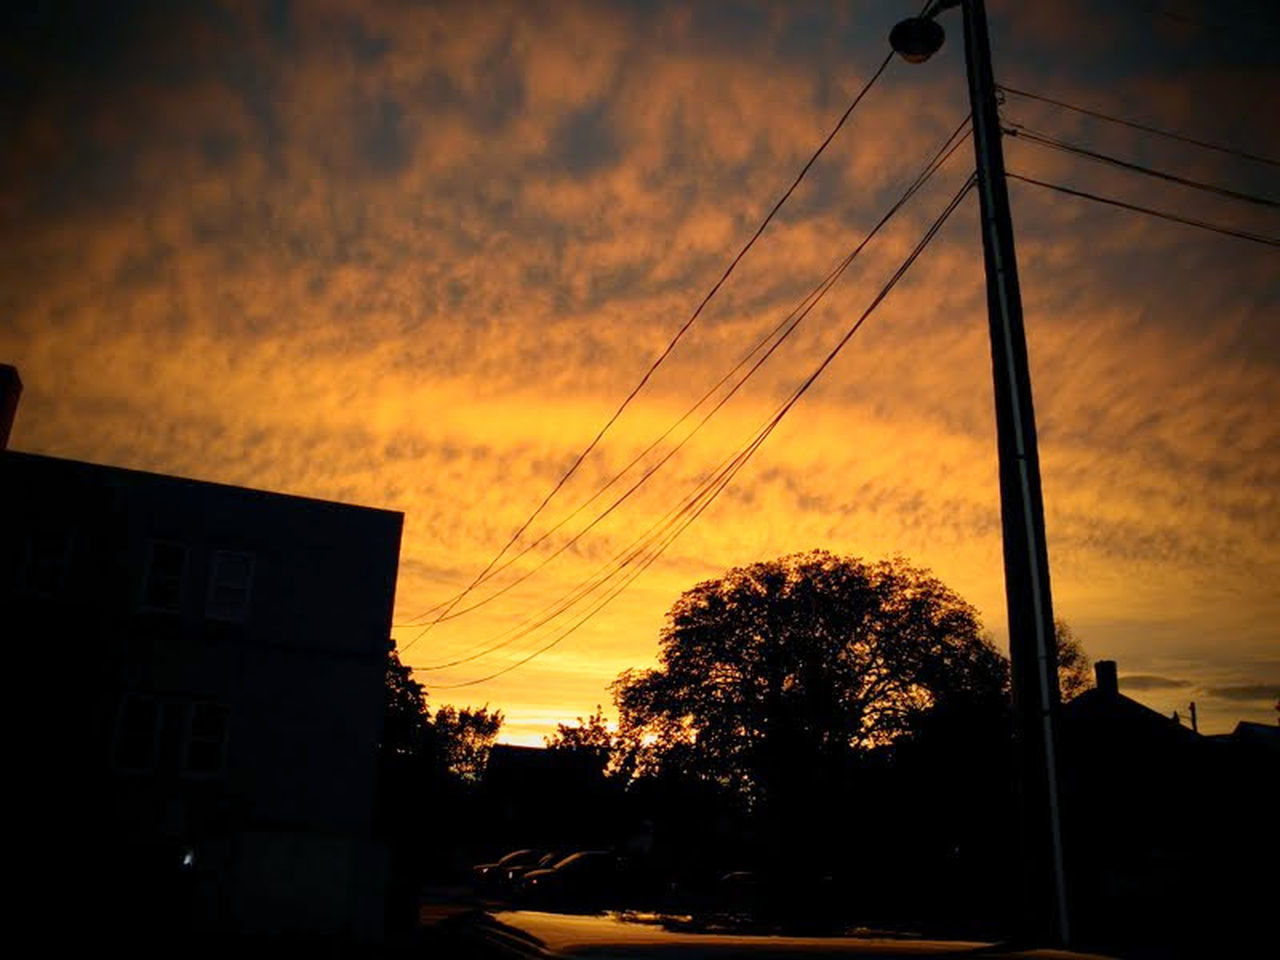 sunset, silhouette, tree, sky, cable, dramatic sky, cloud - sky, house, no people, nature, built structure, beauty in nature, outdoors, telephone line, architecture, building exterior, scenics, city